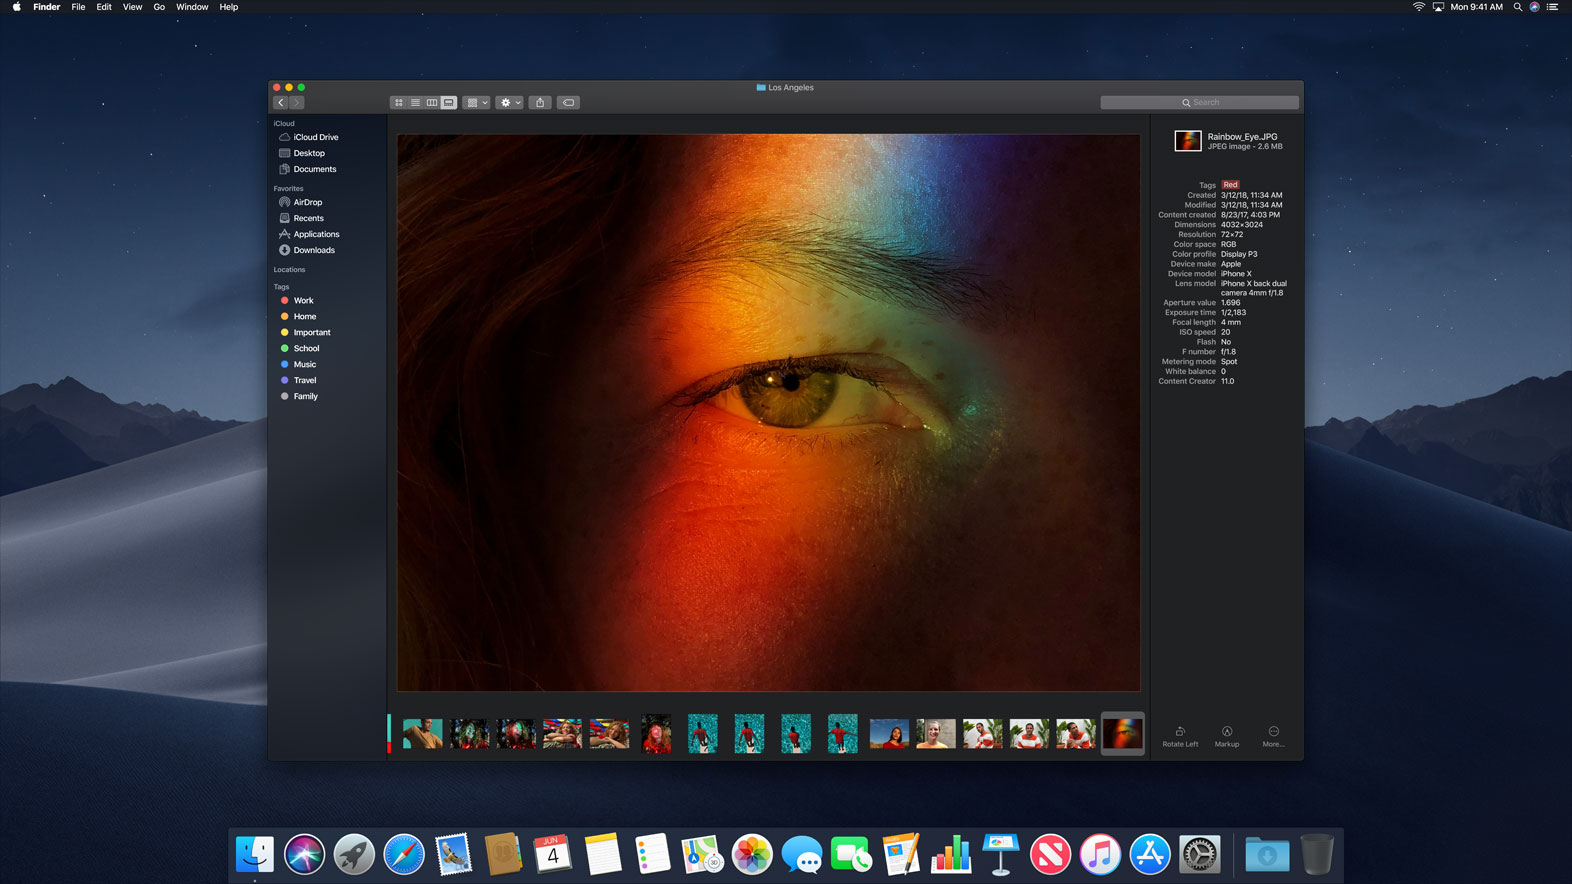 The Gallery view on macOS Mojave replaces the previous Cover Flow mode